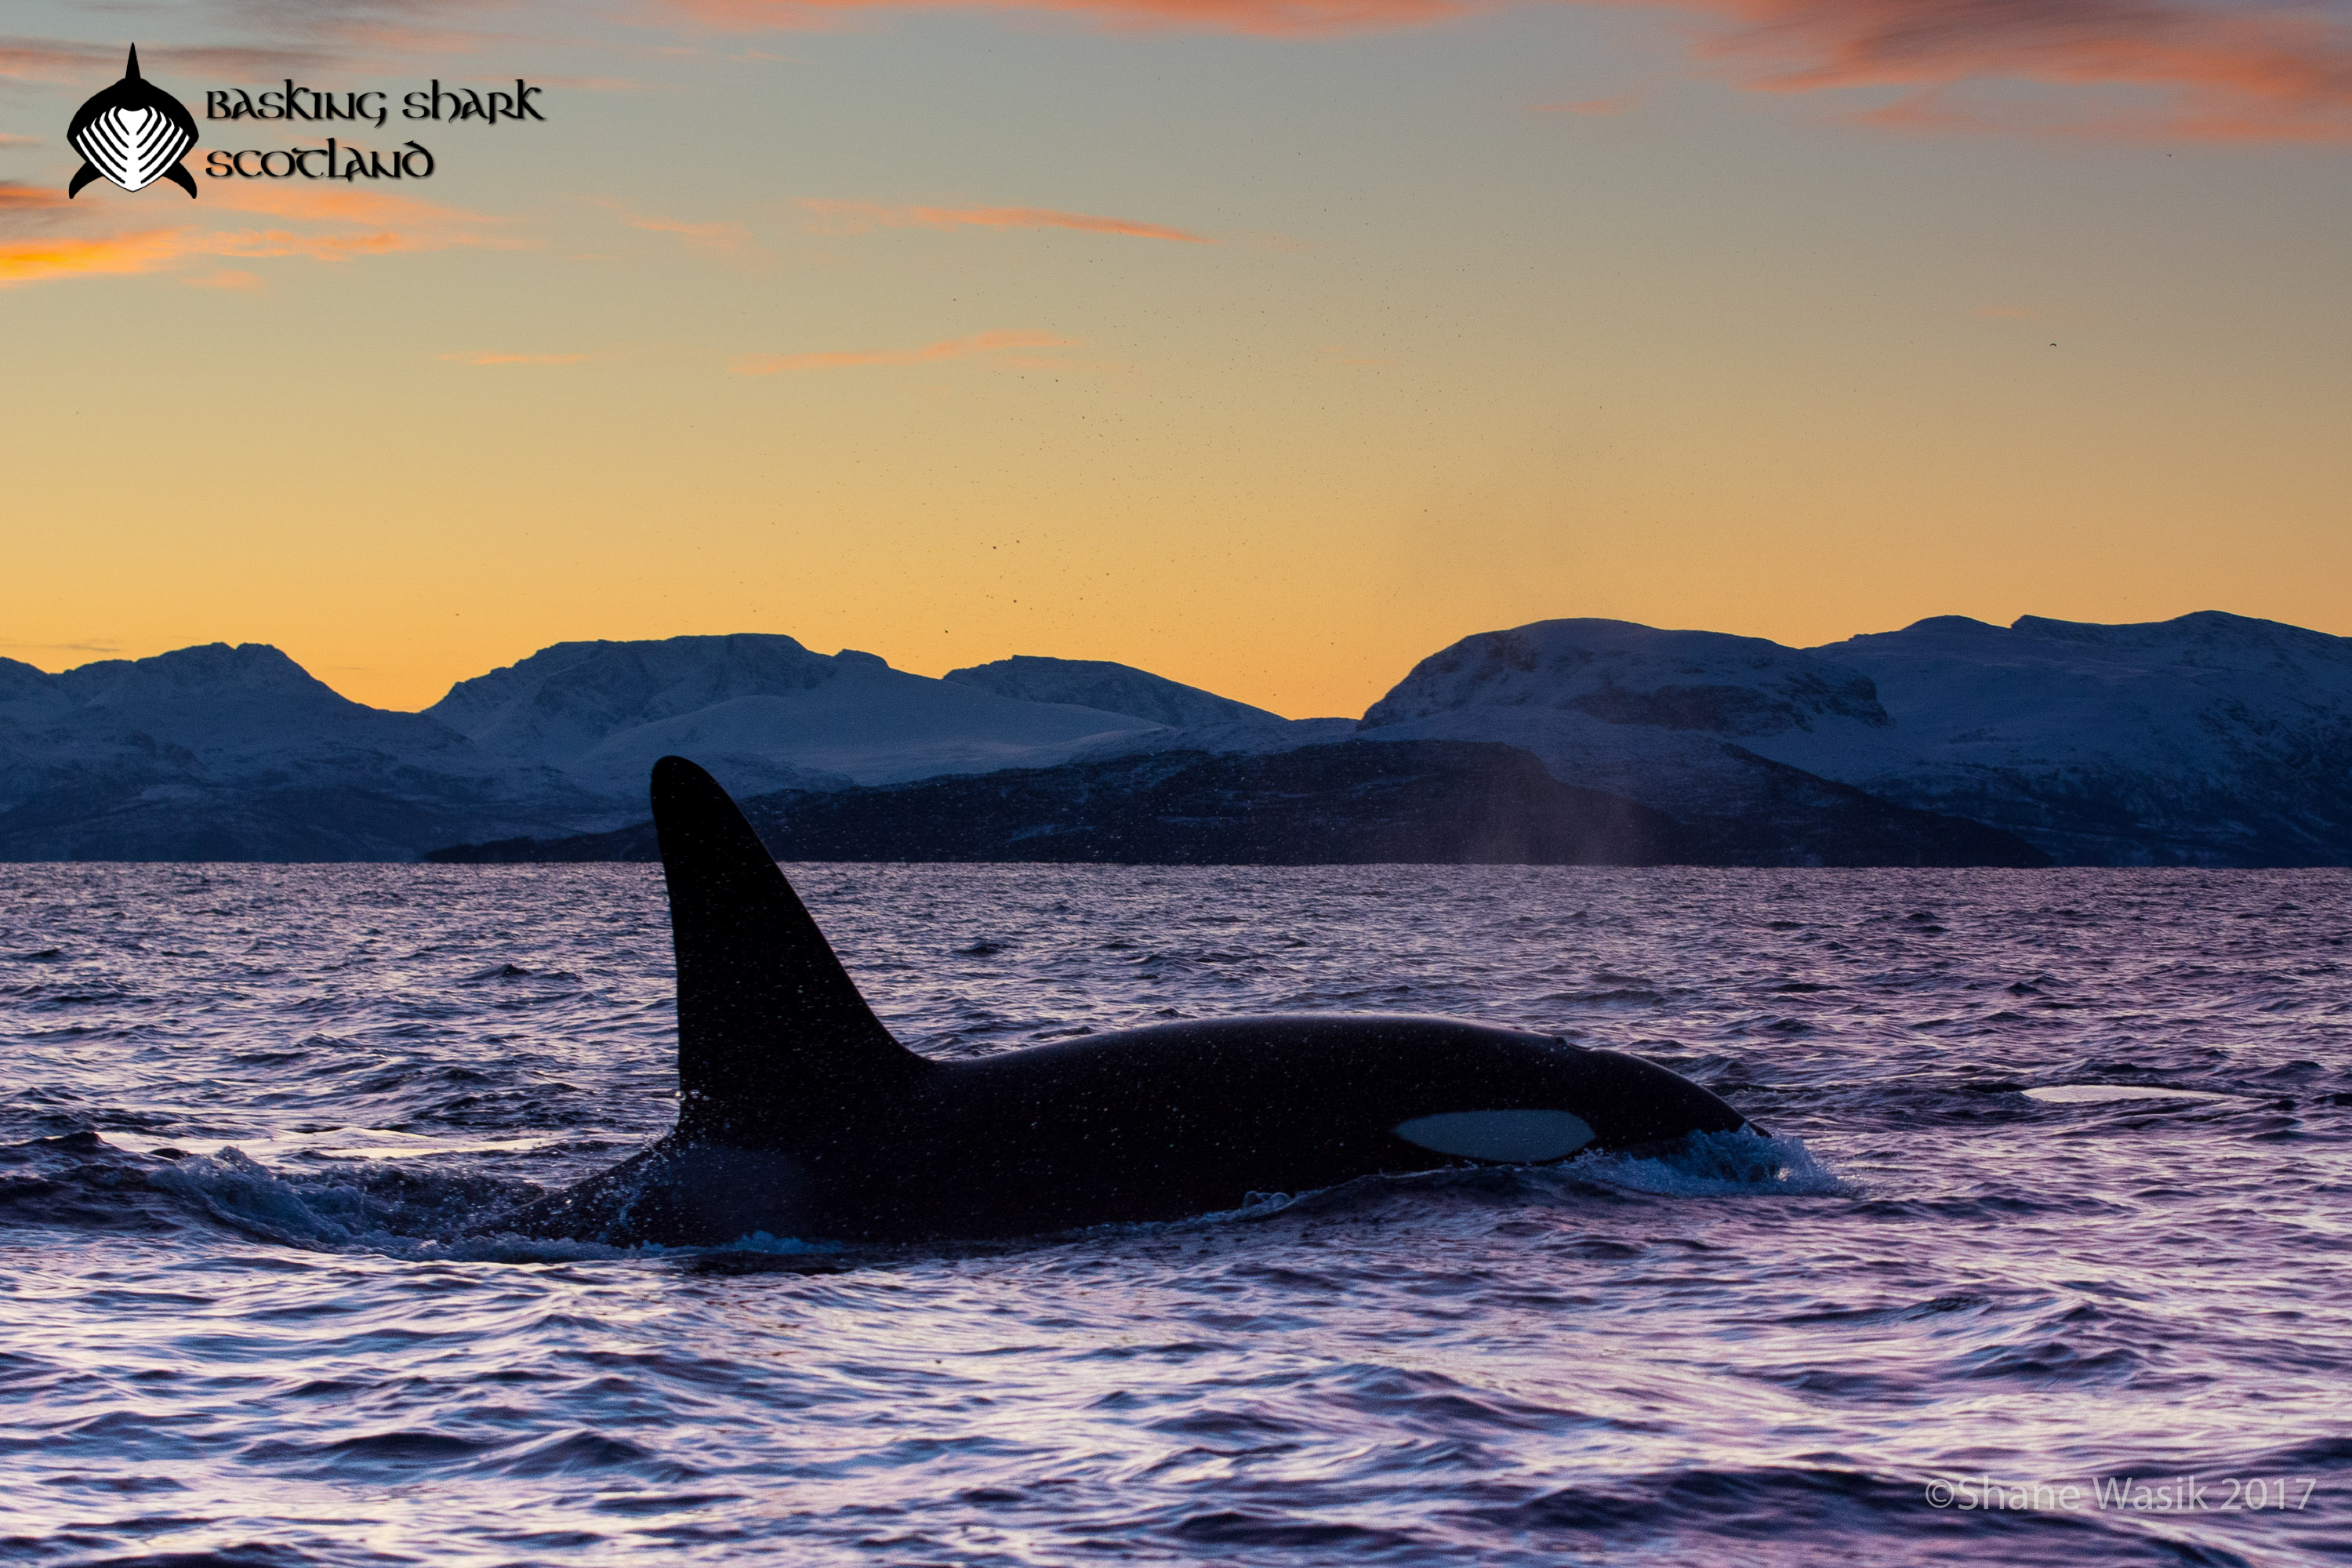 Orca at sunset in Norway